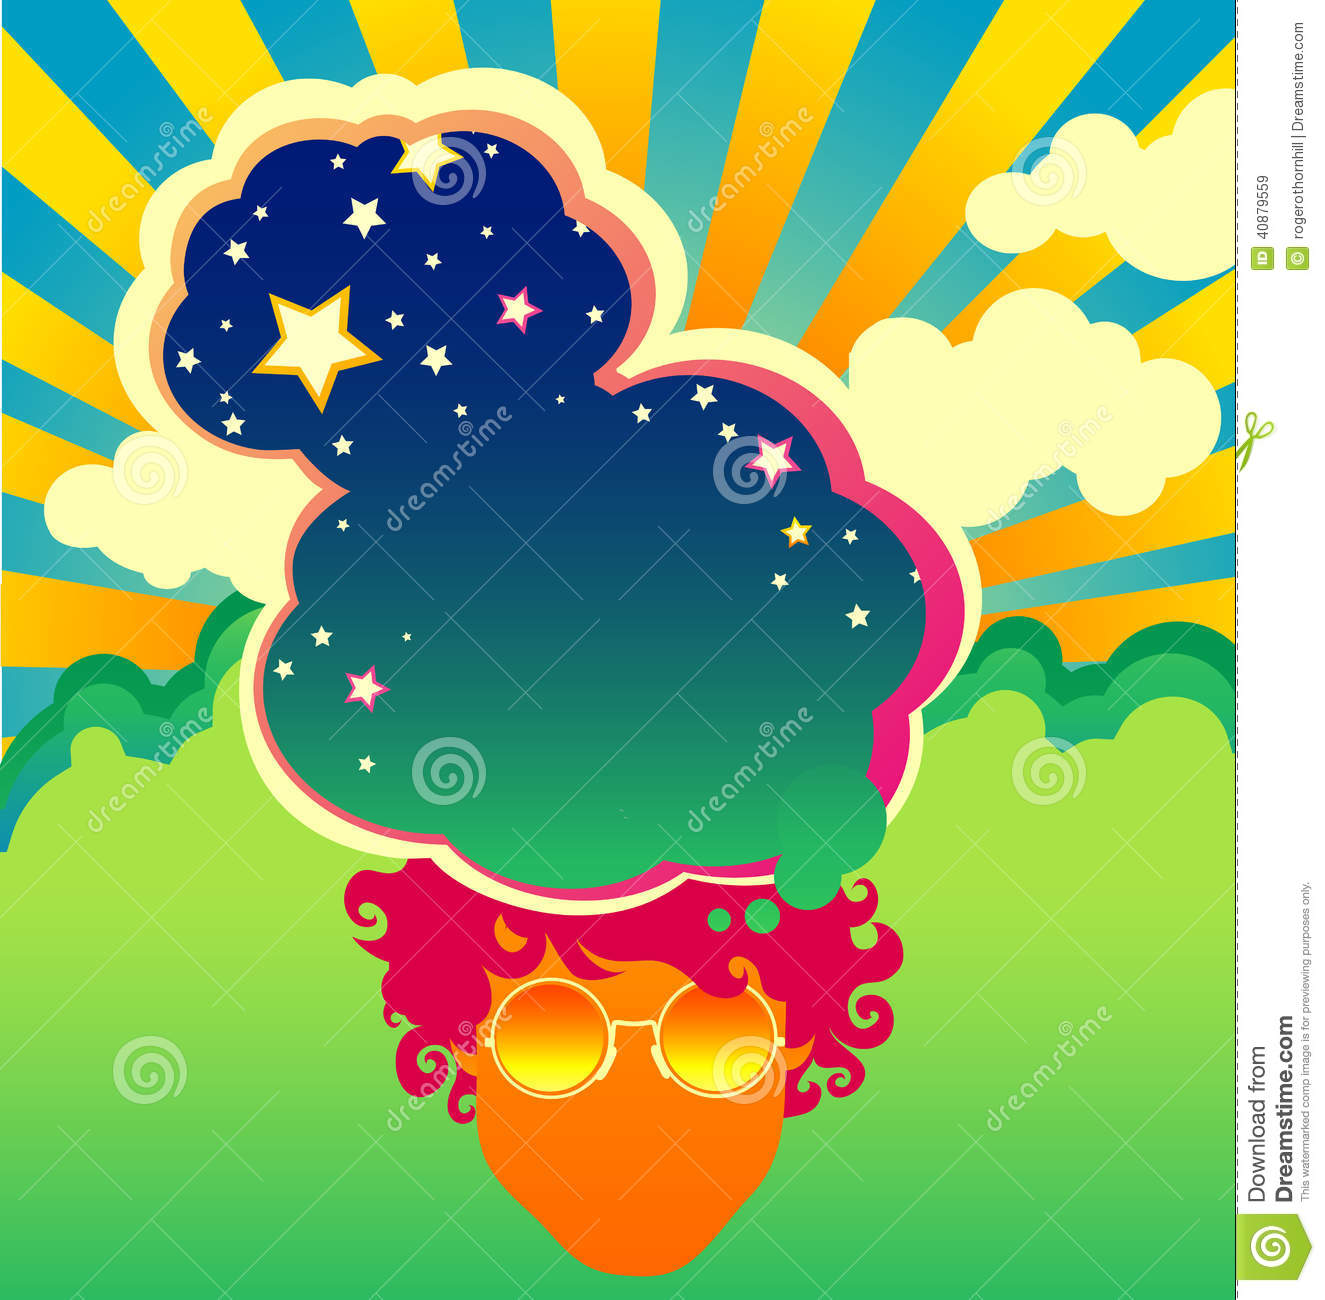 Poster backgrounds design - 1960s Design Poster Psychedelic Style Template